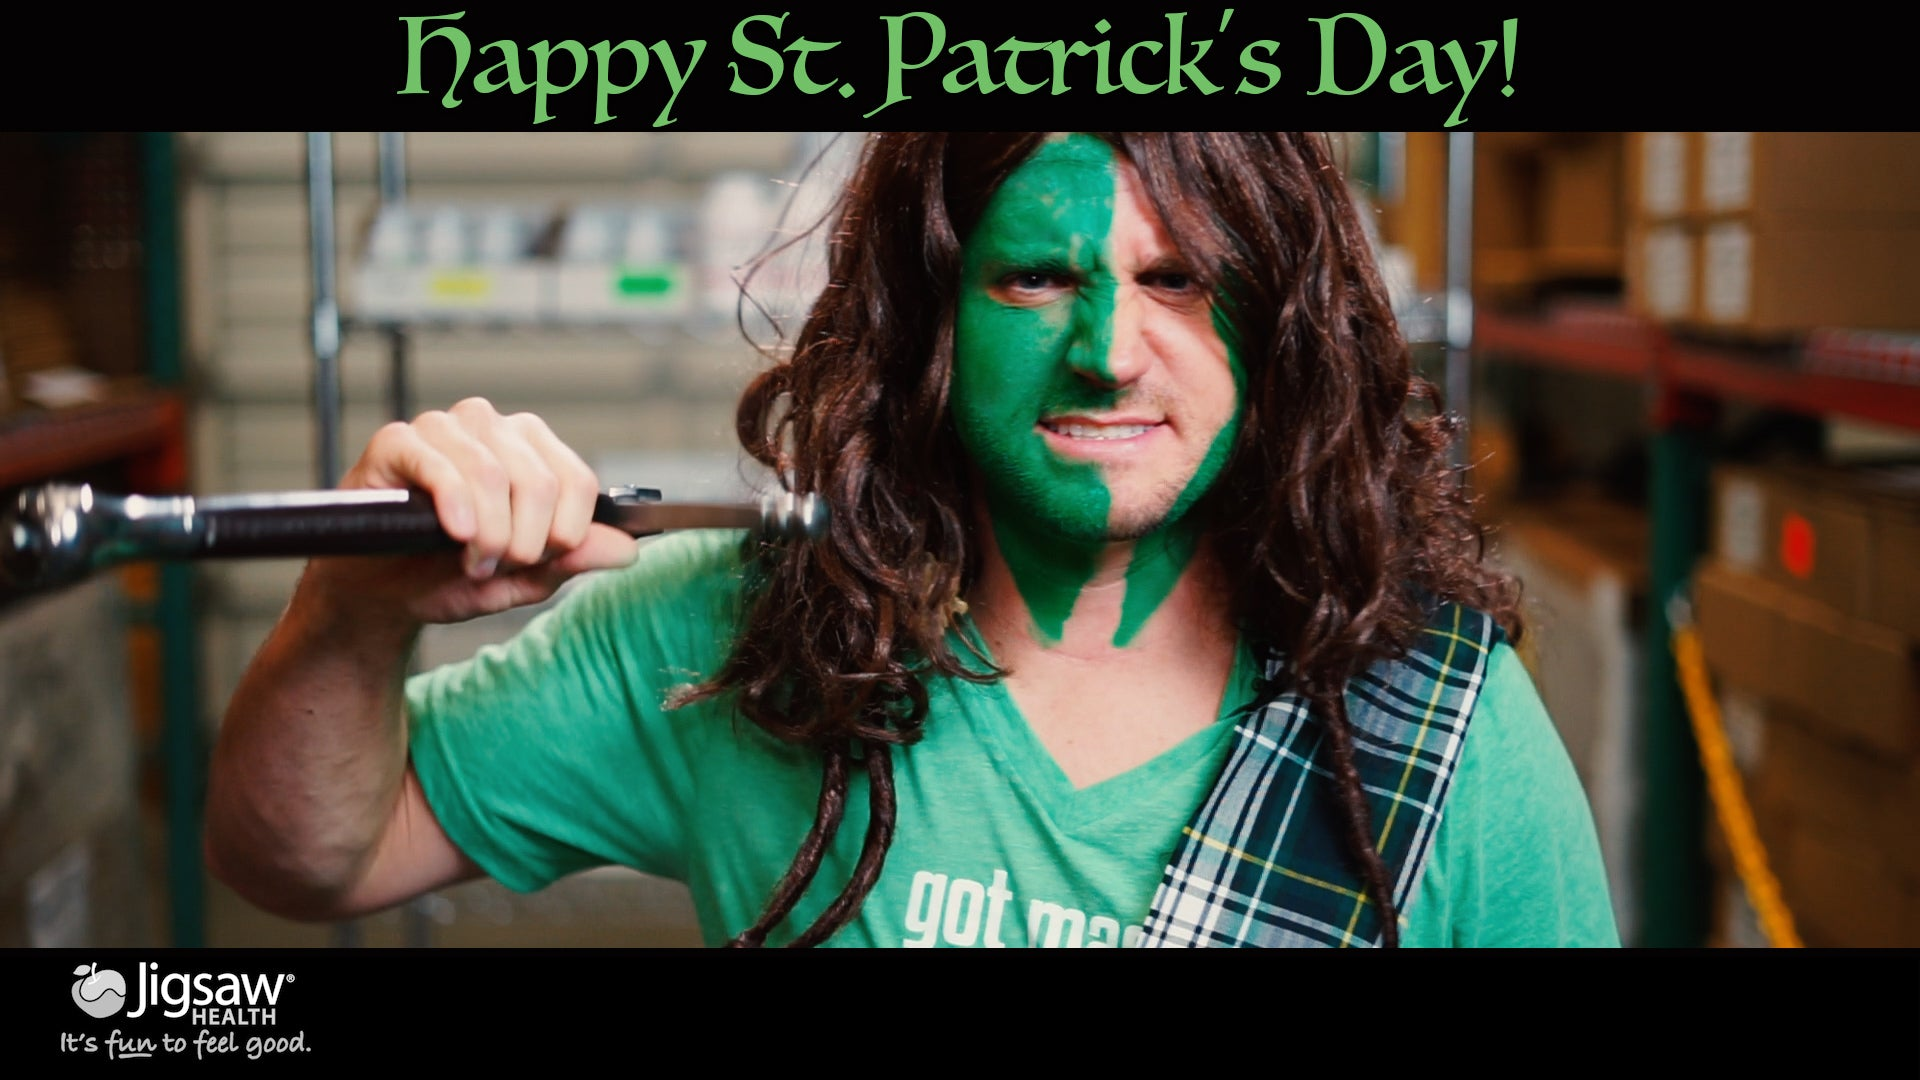 Patrick Goes Full Braveheart for St. Patrick's Day | #FunnyFriday